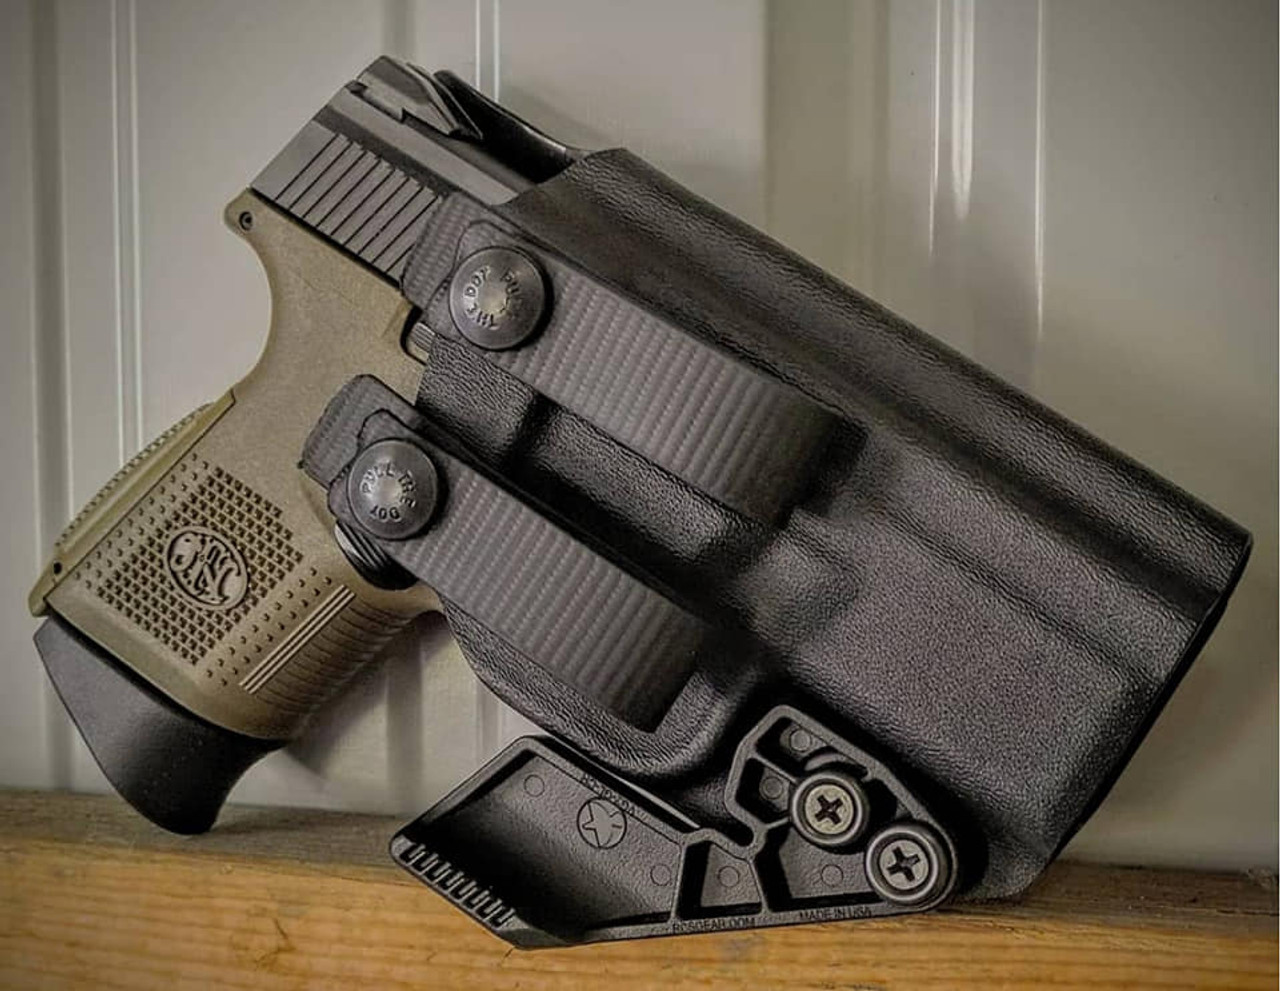 FN FNS 9c Appendix Carry Holster with Soft Loops